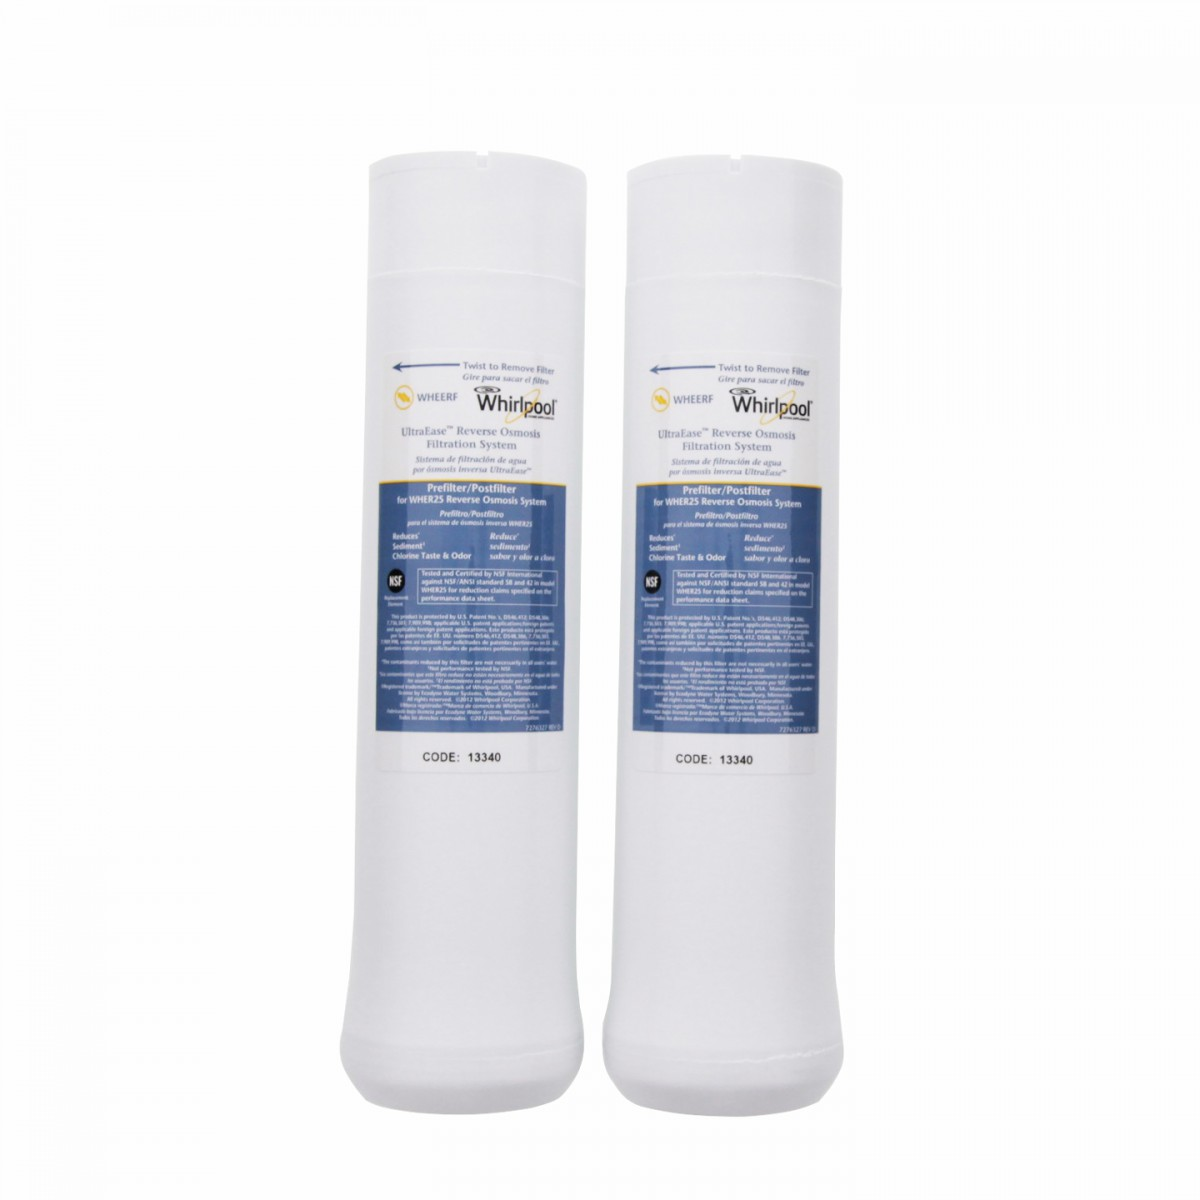 Wheerf Whirlpool Replacement Water Filters